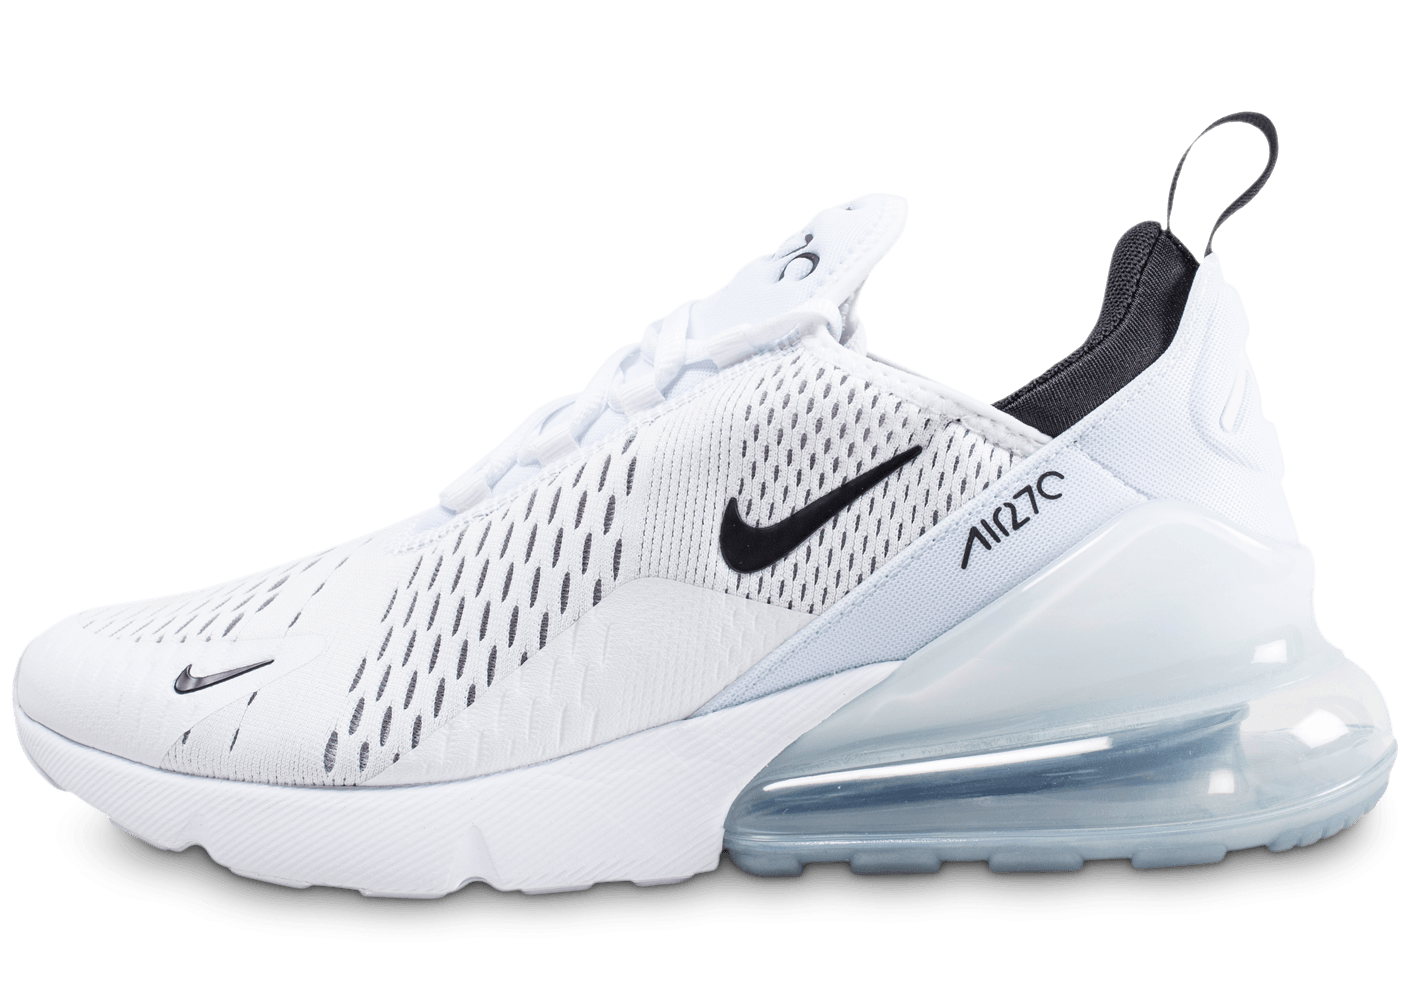 nike air max 270 blanche et noire chaussures baskets homme chausport. Black Bedroom Furniture Sets. Home Design Ideas